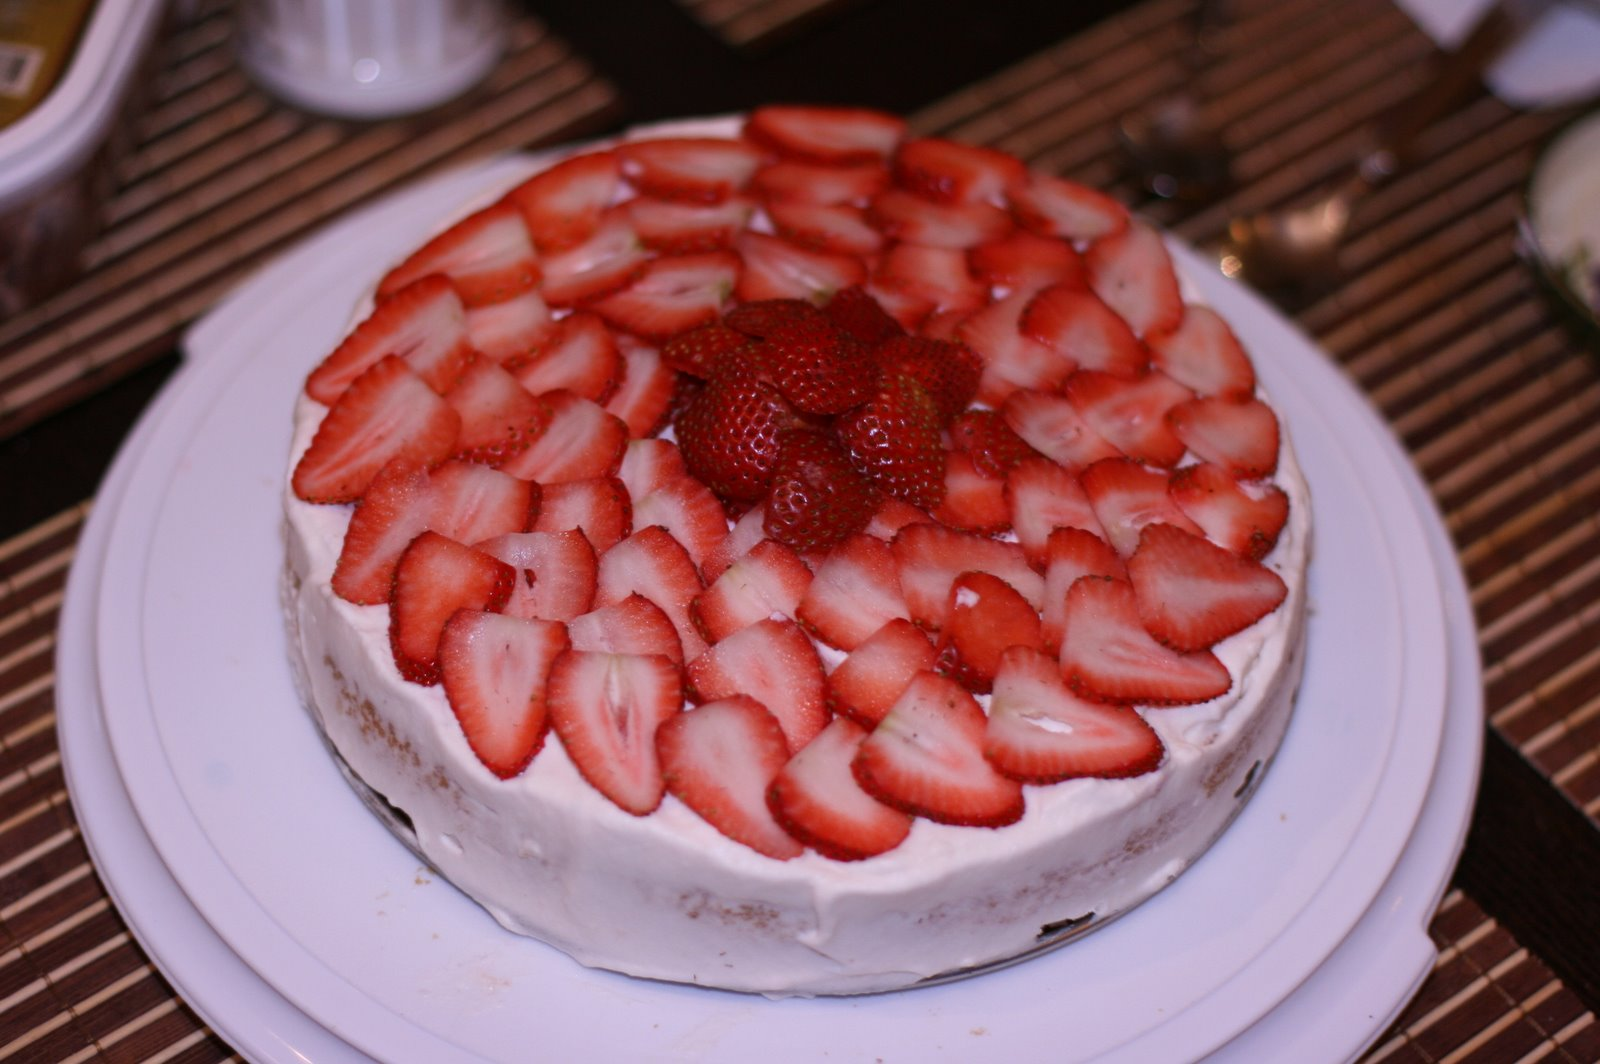 Strawberries And Whipped Cream | Pictures of Strawberry: Shortcake ...